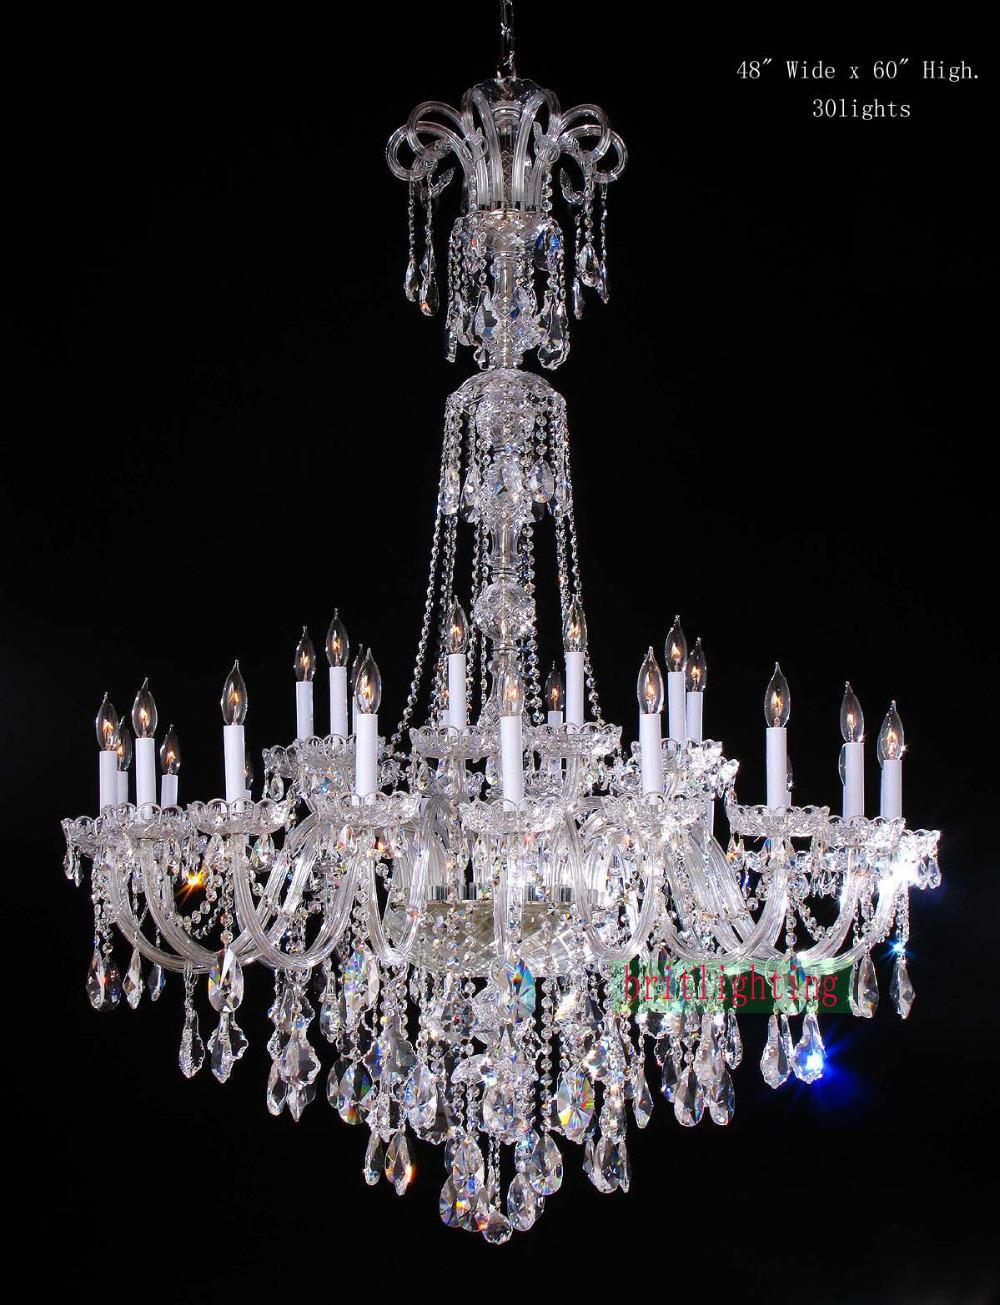 Lamp Modern Crystal Chandeliers 5 Star Hotel Chandelier Led – Modern Crystal Chandeliers